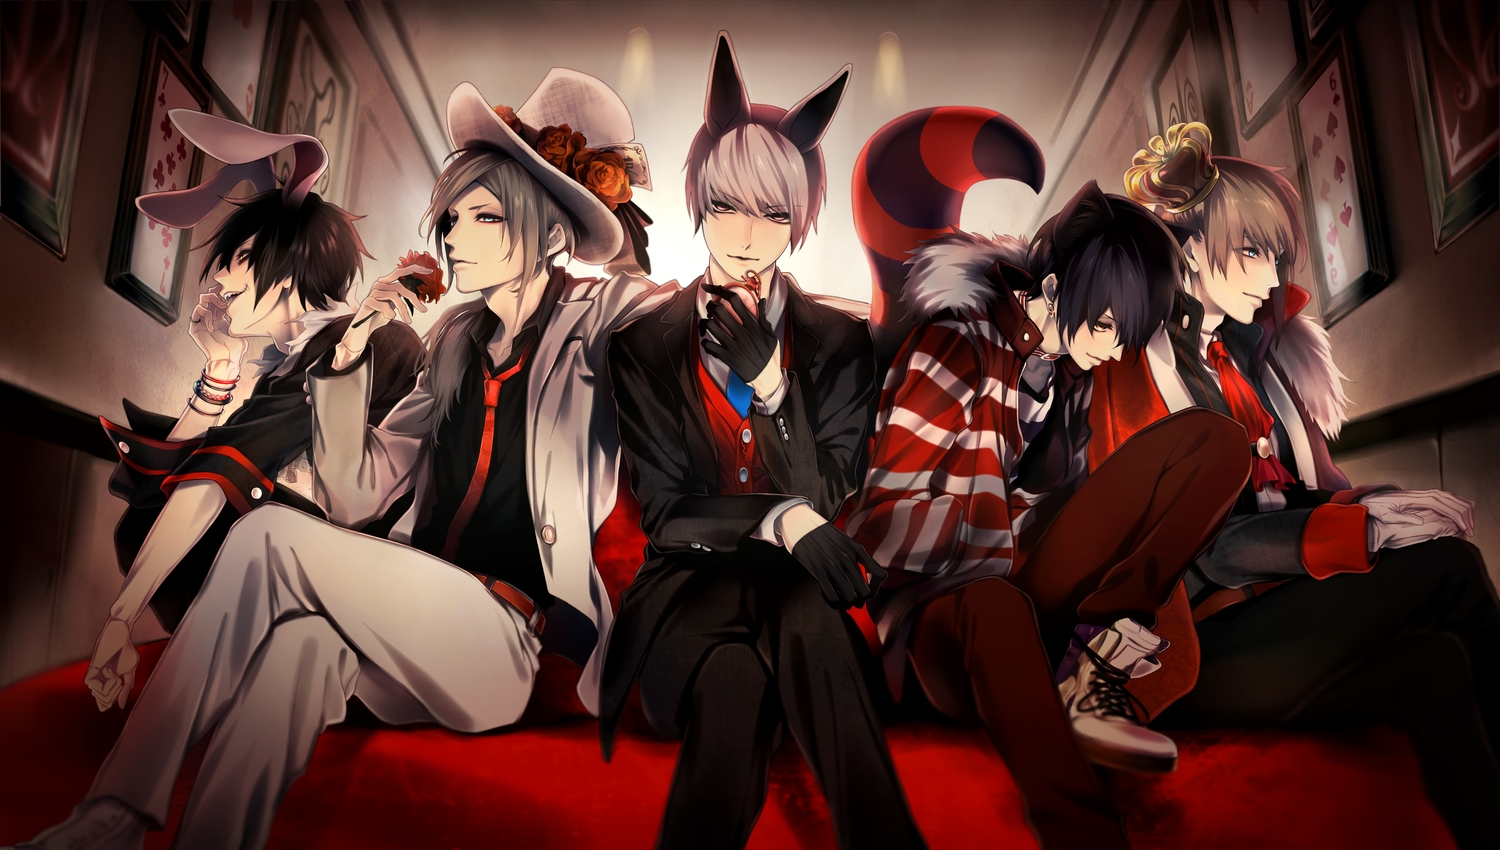 alice_in_wonderland all_male animal_ears anthropomorphism asarai black_hair blonde_hair blue_eyes boots bunny_ears catboy cheshire_cat collar fang flowers genderswap gloves gray_hair group hat mad_hatter male original purple_eyes queen_of_hearts short_hair tagme_(character) tail tie white_rabbit wristwear